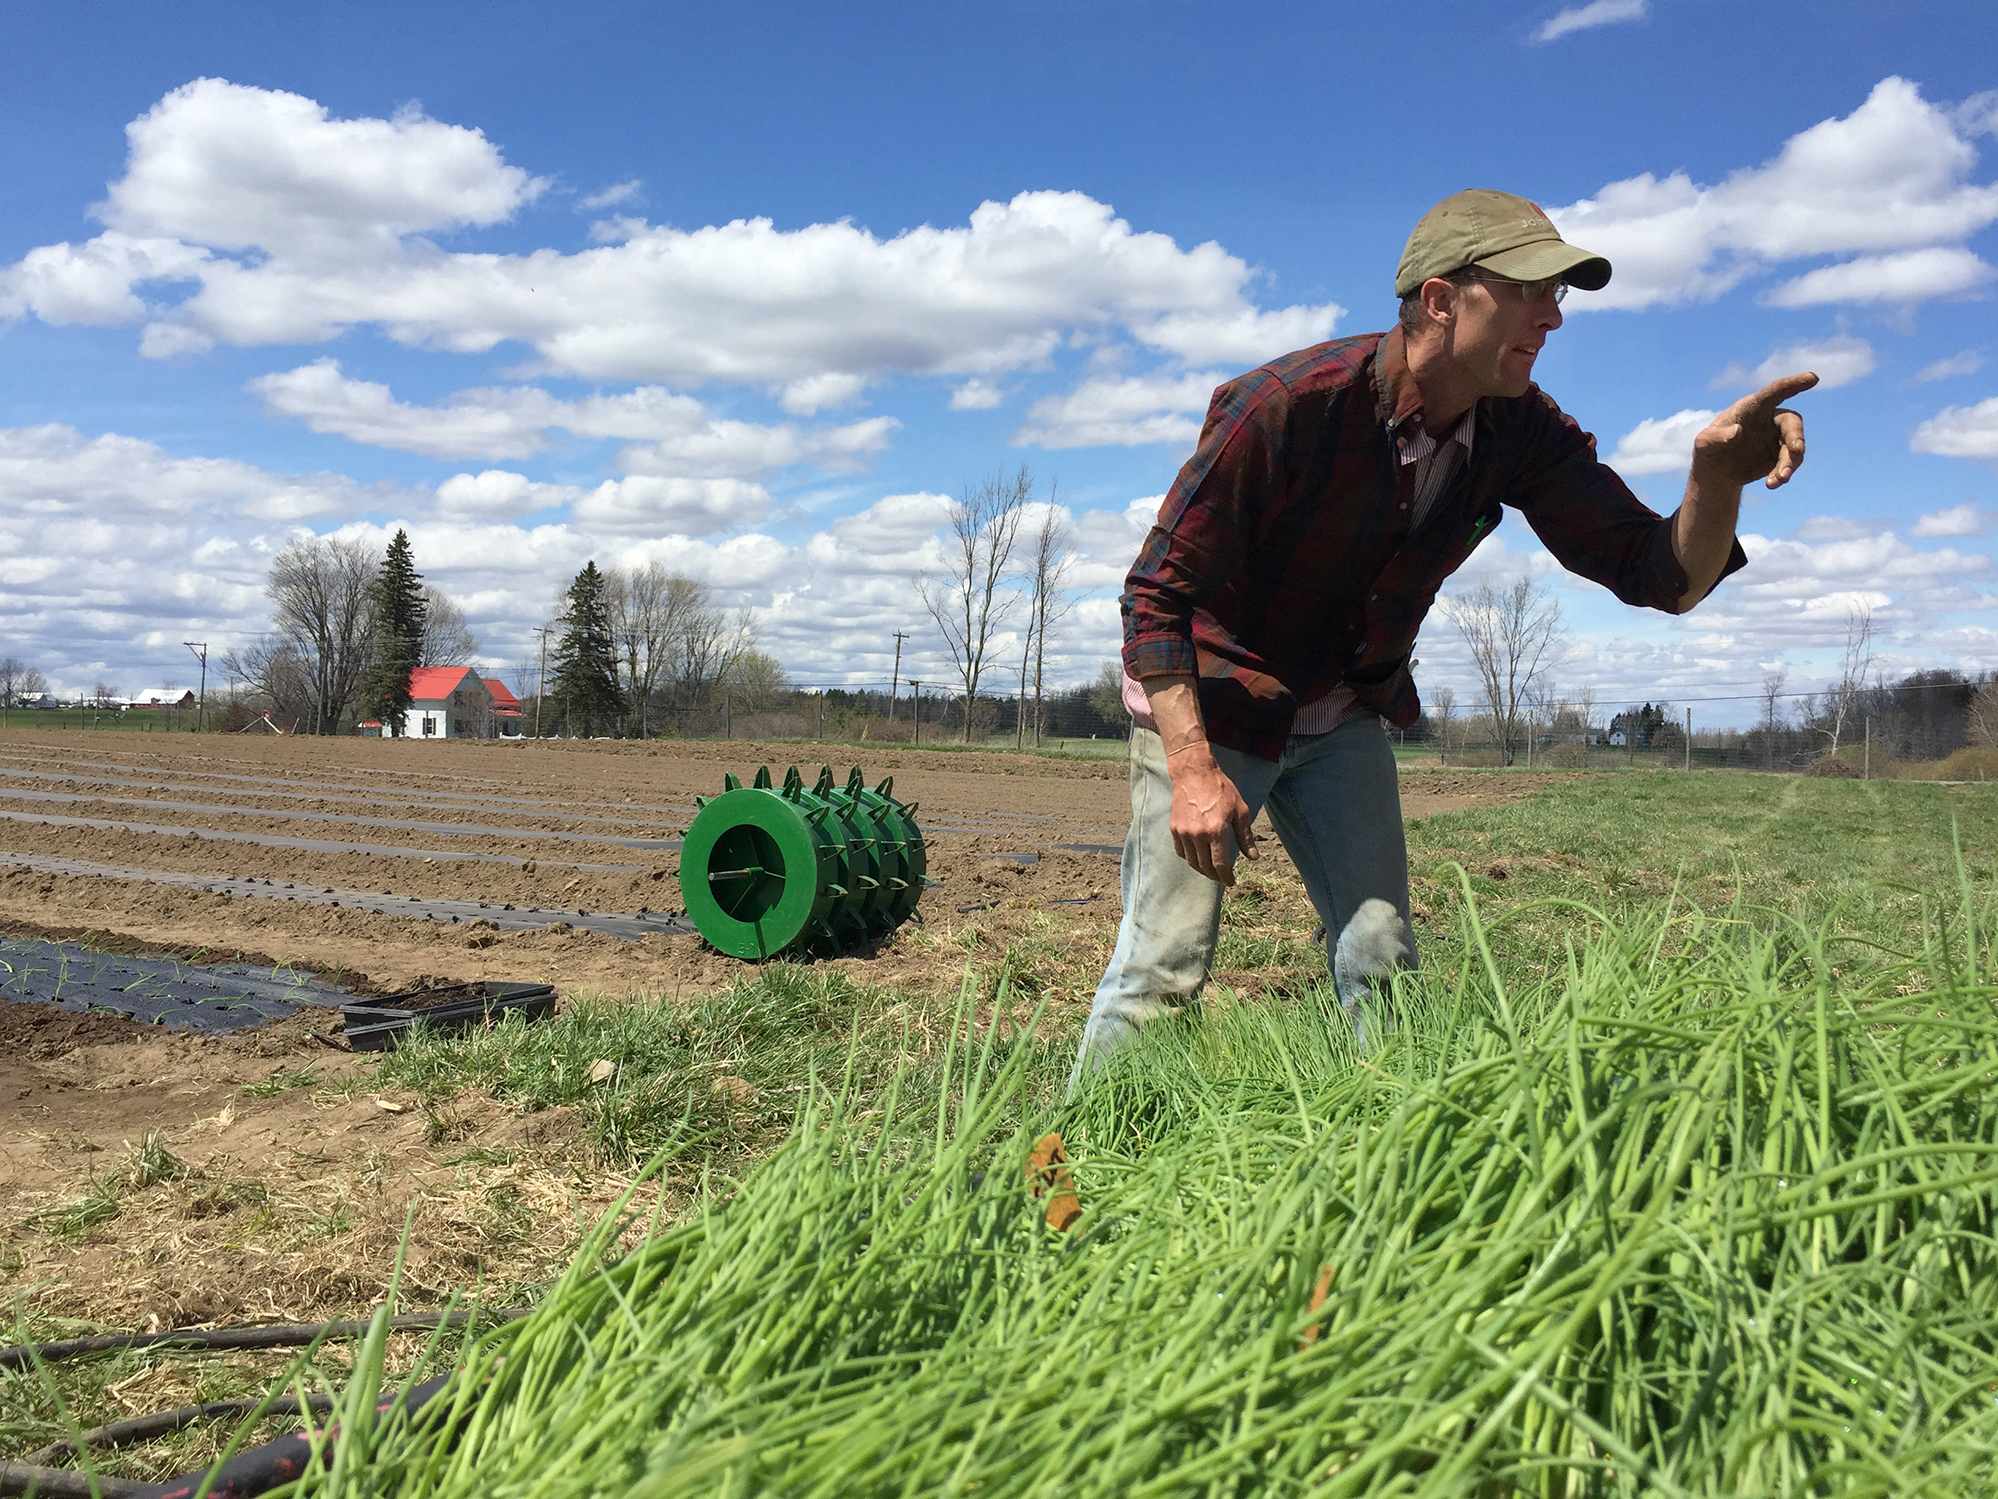 Dan Kent owns Kent Family Growers in upstate New York. This is the first year he's hired workers through the H-2A visa program. They're expected to arrive in late May — about six weeks behind schedule.